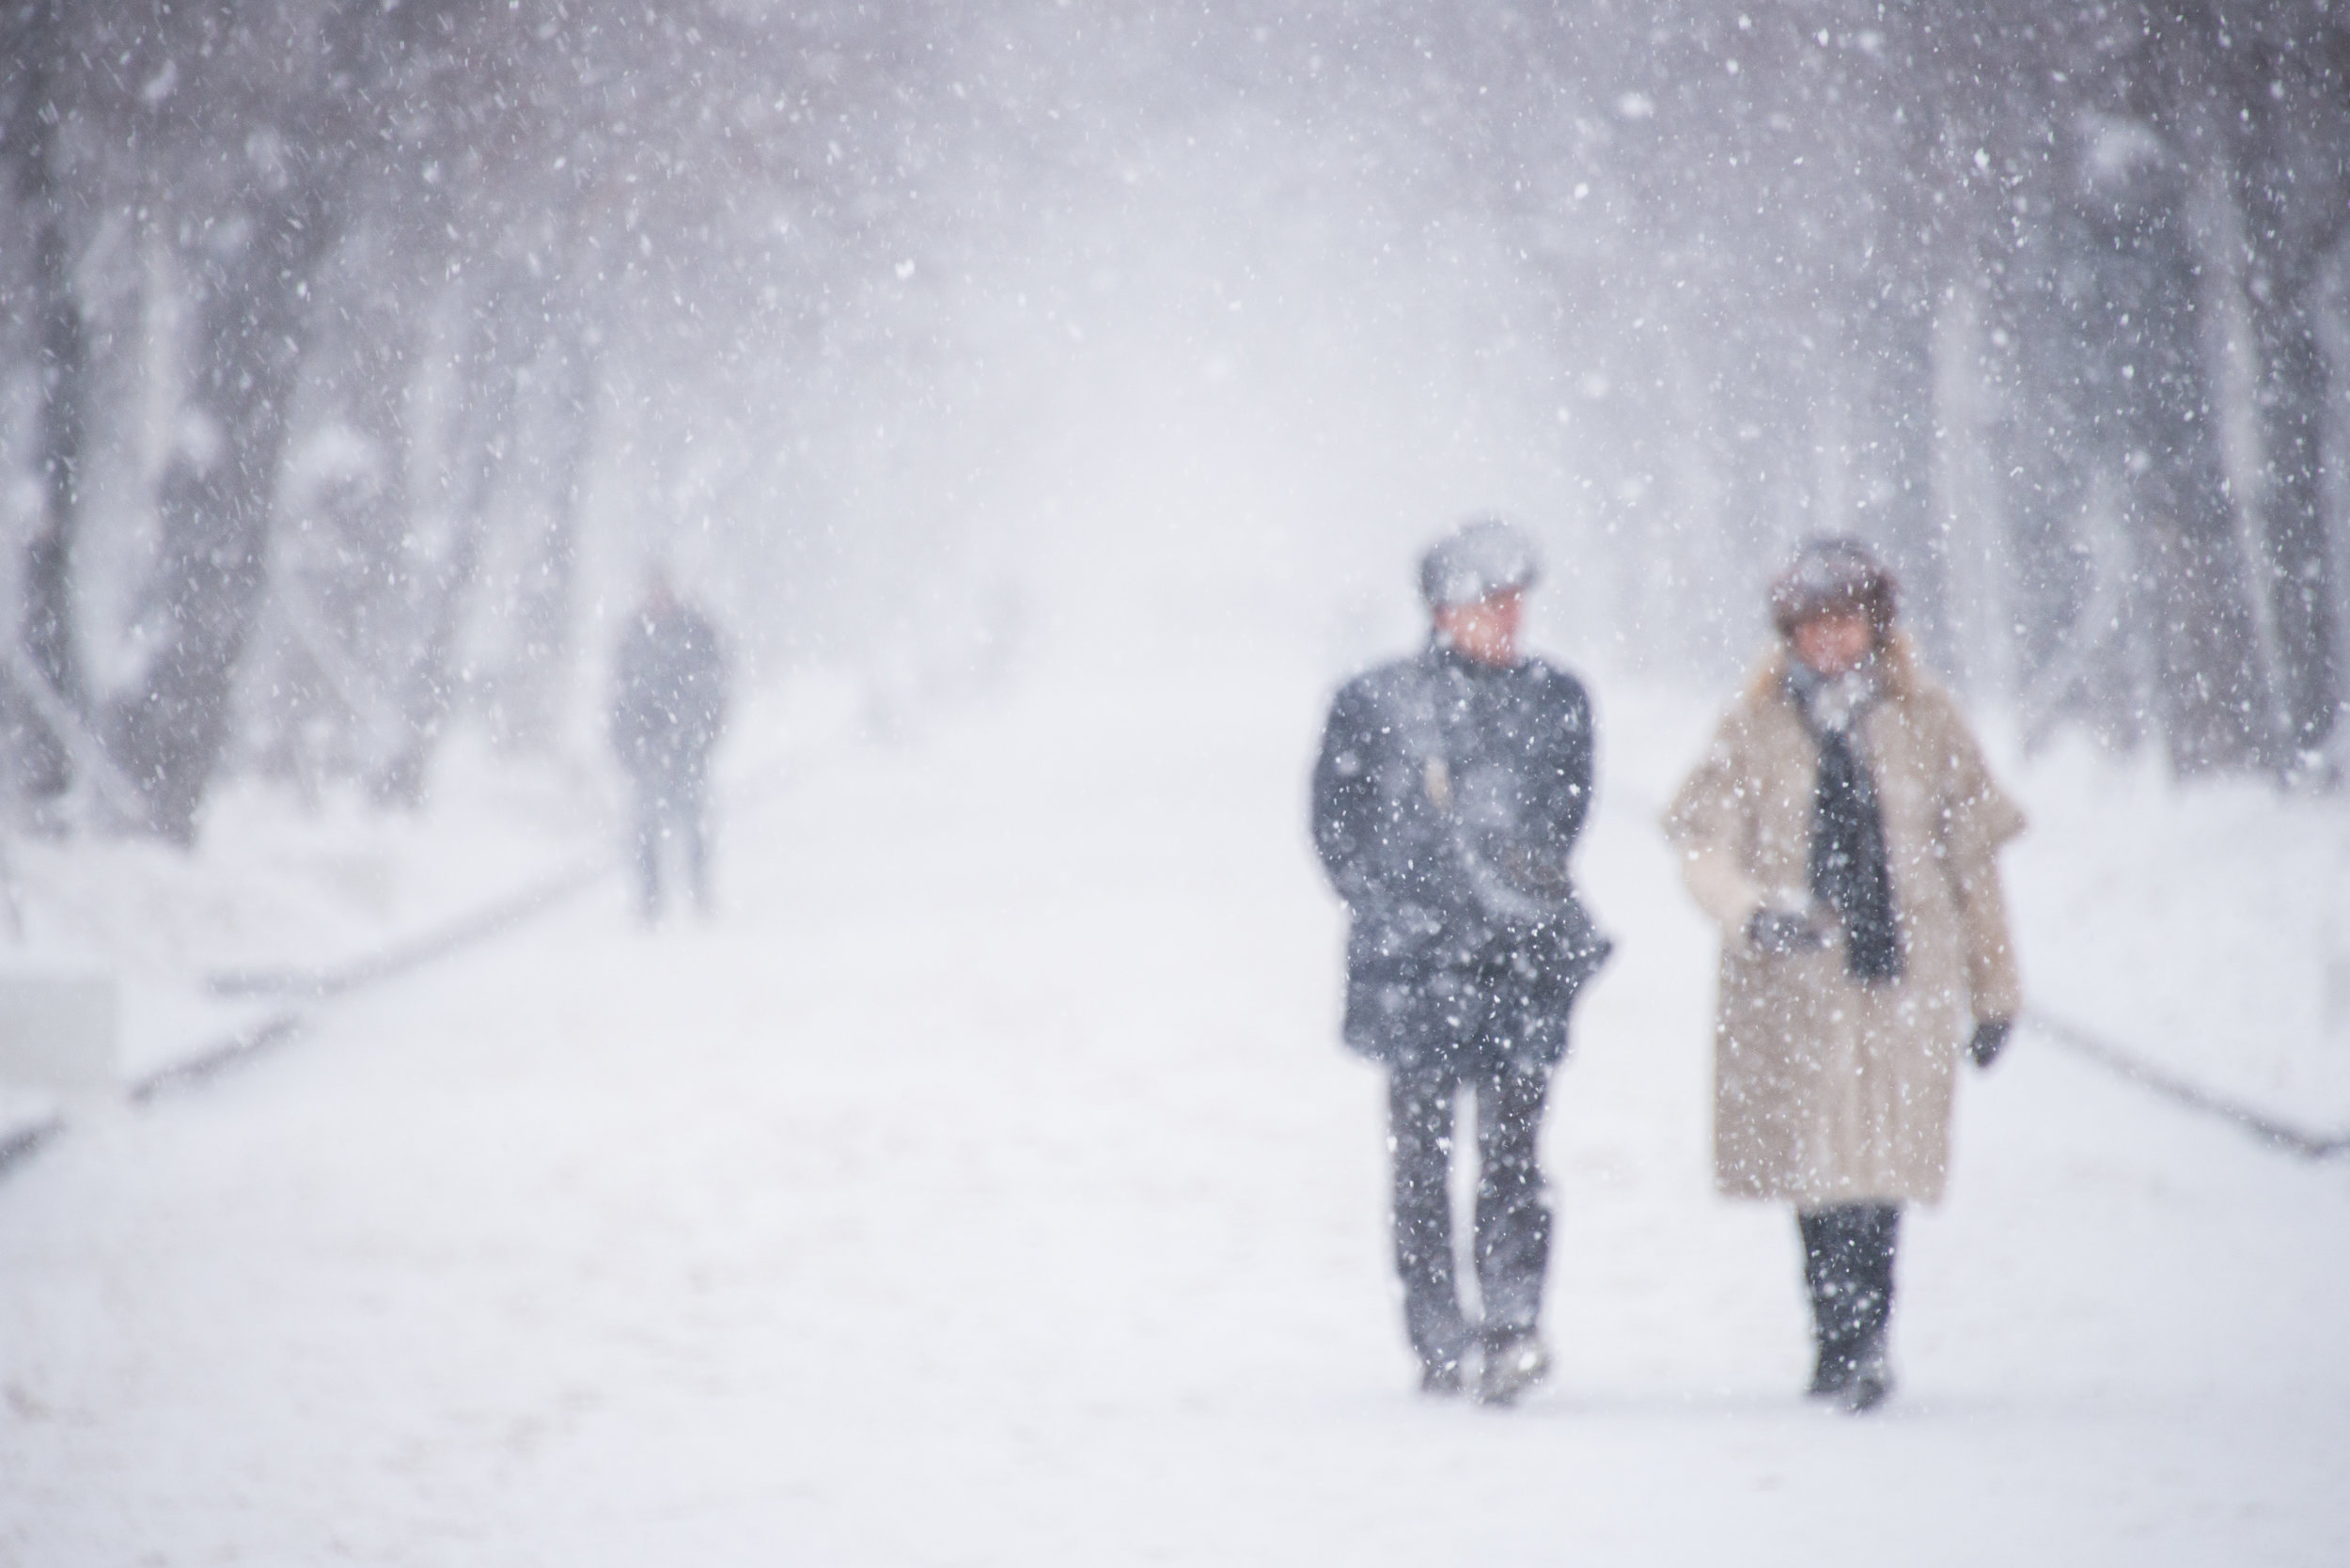 Couple in a snowstorm available framed (frame 50 x 70cm)or unframed (photo 40 x 50cm)